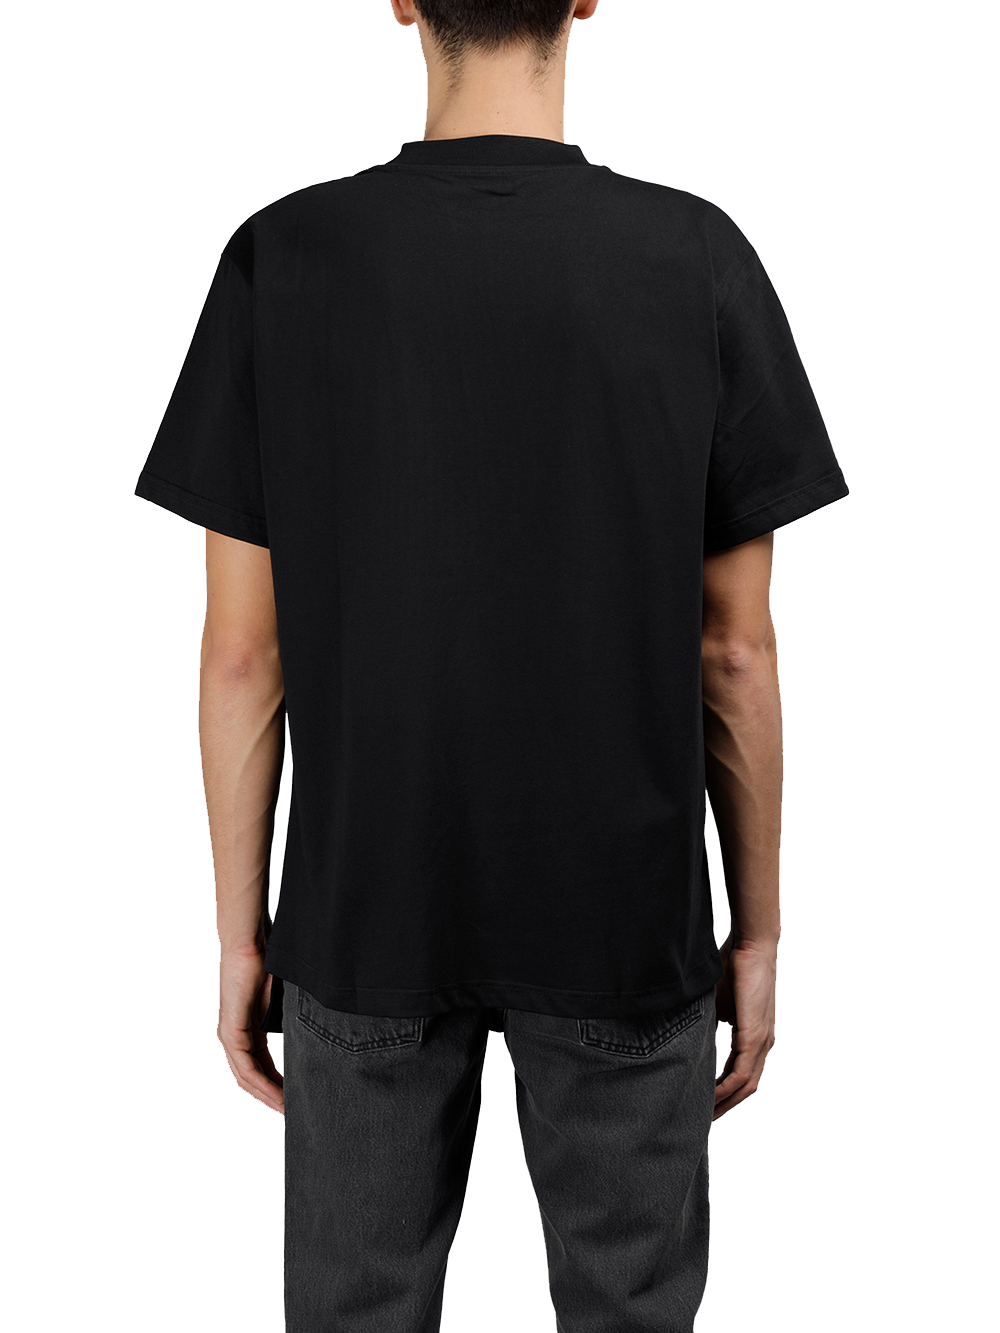 PRAY FOR US Man's Black CLUBBER Tee  Black Round Neck Short Sleeves Front CLUBBER Print 100% Cotton Made In Italy